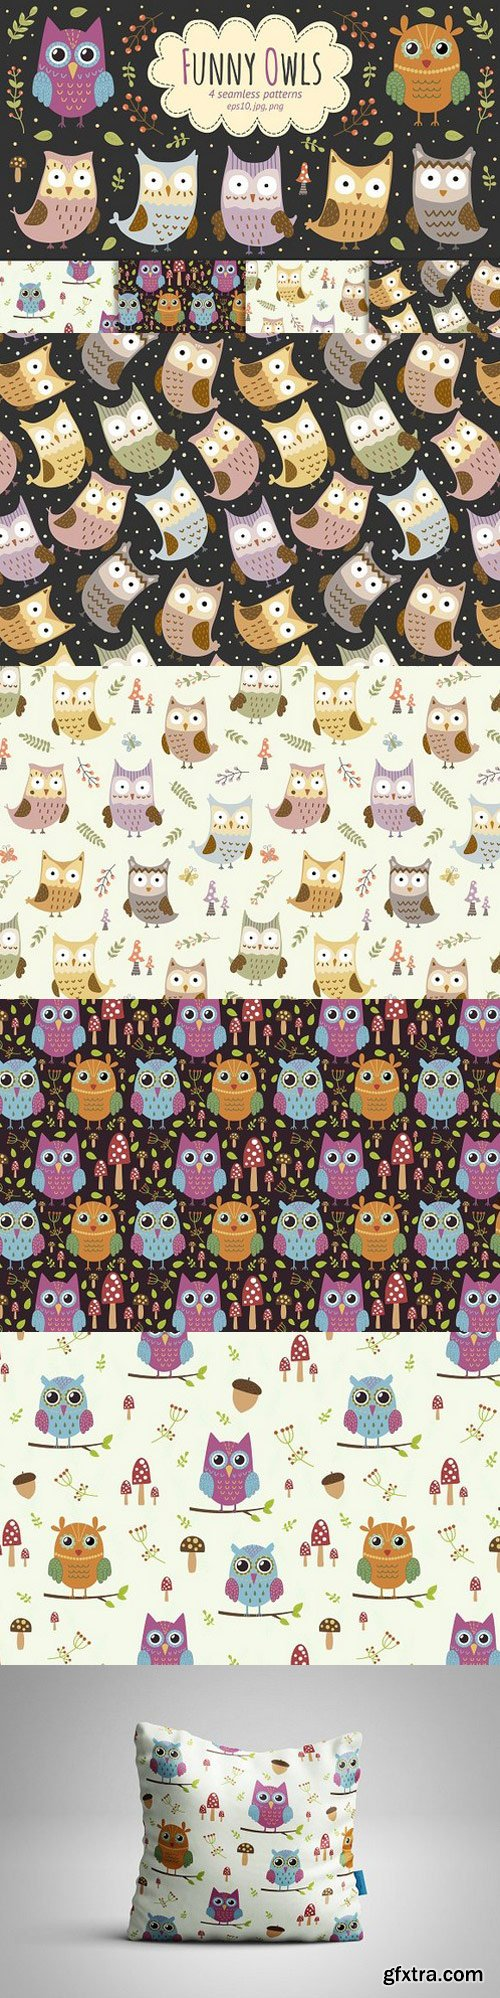 Funny Owls 4 seamless patterns